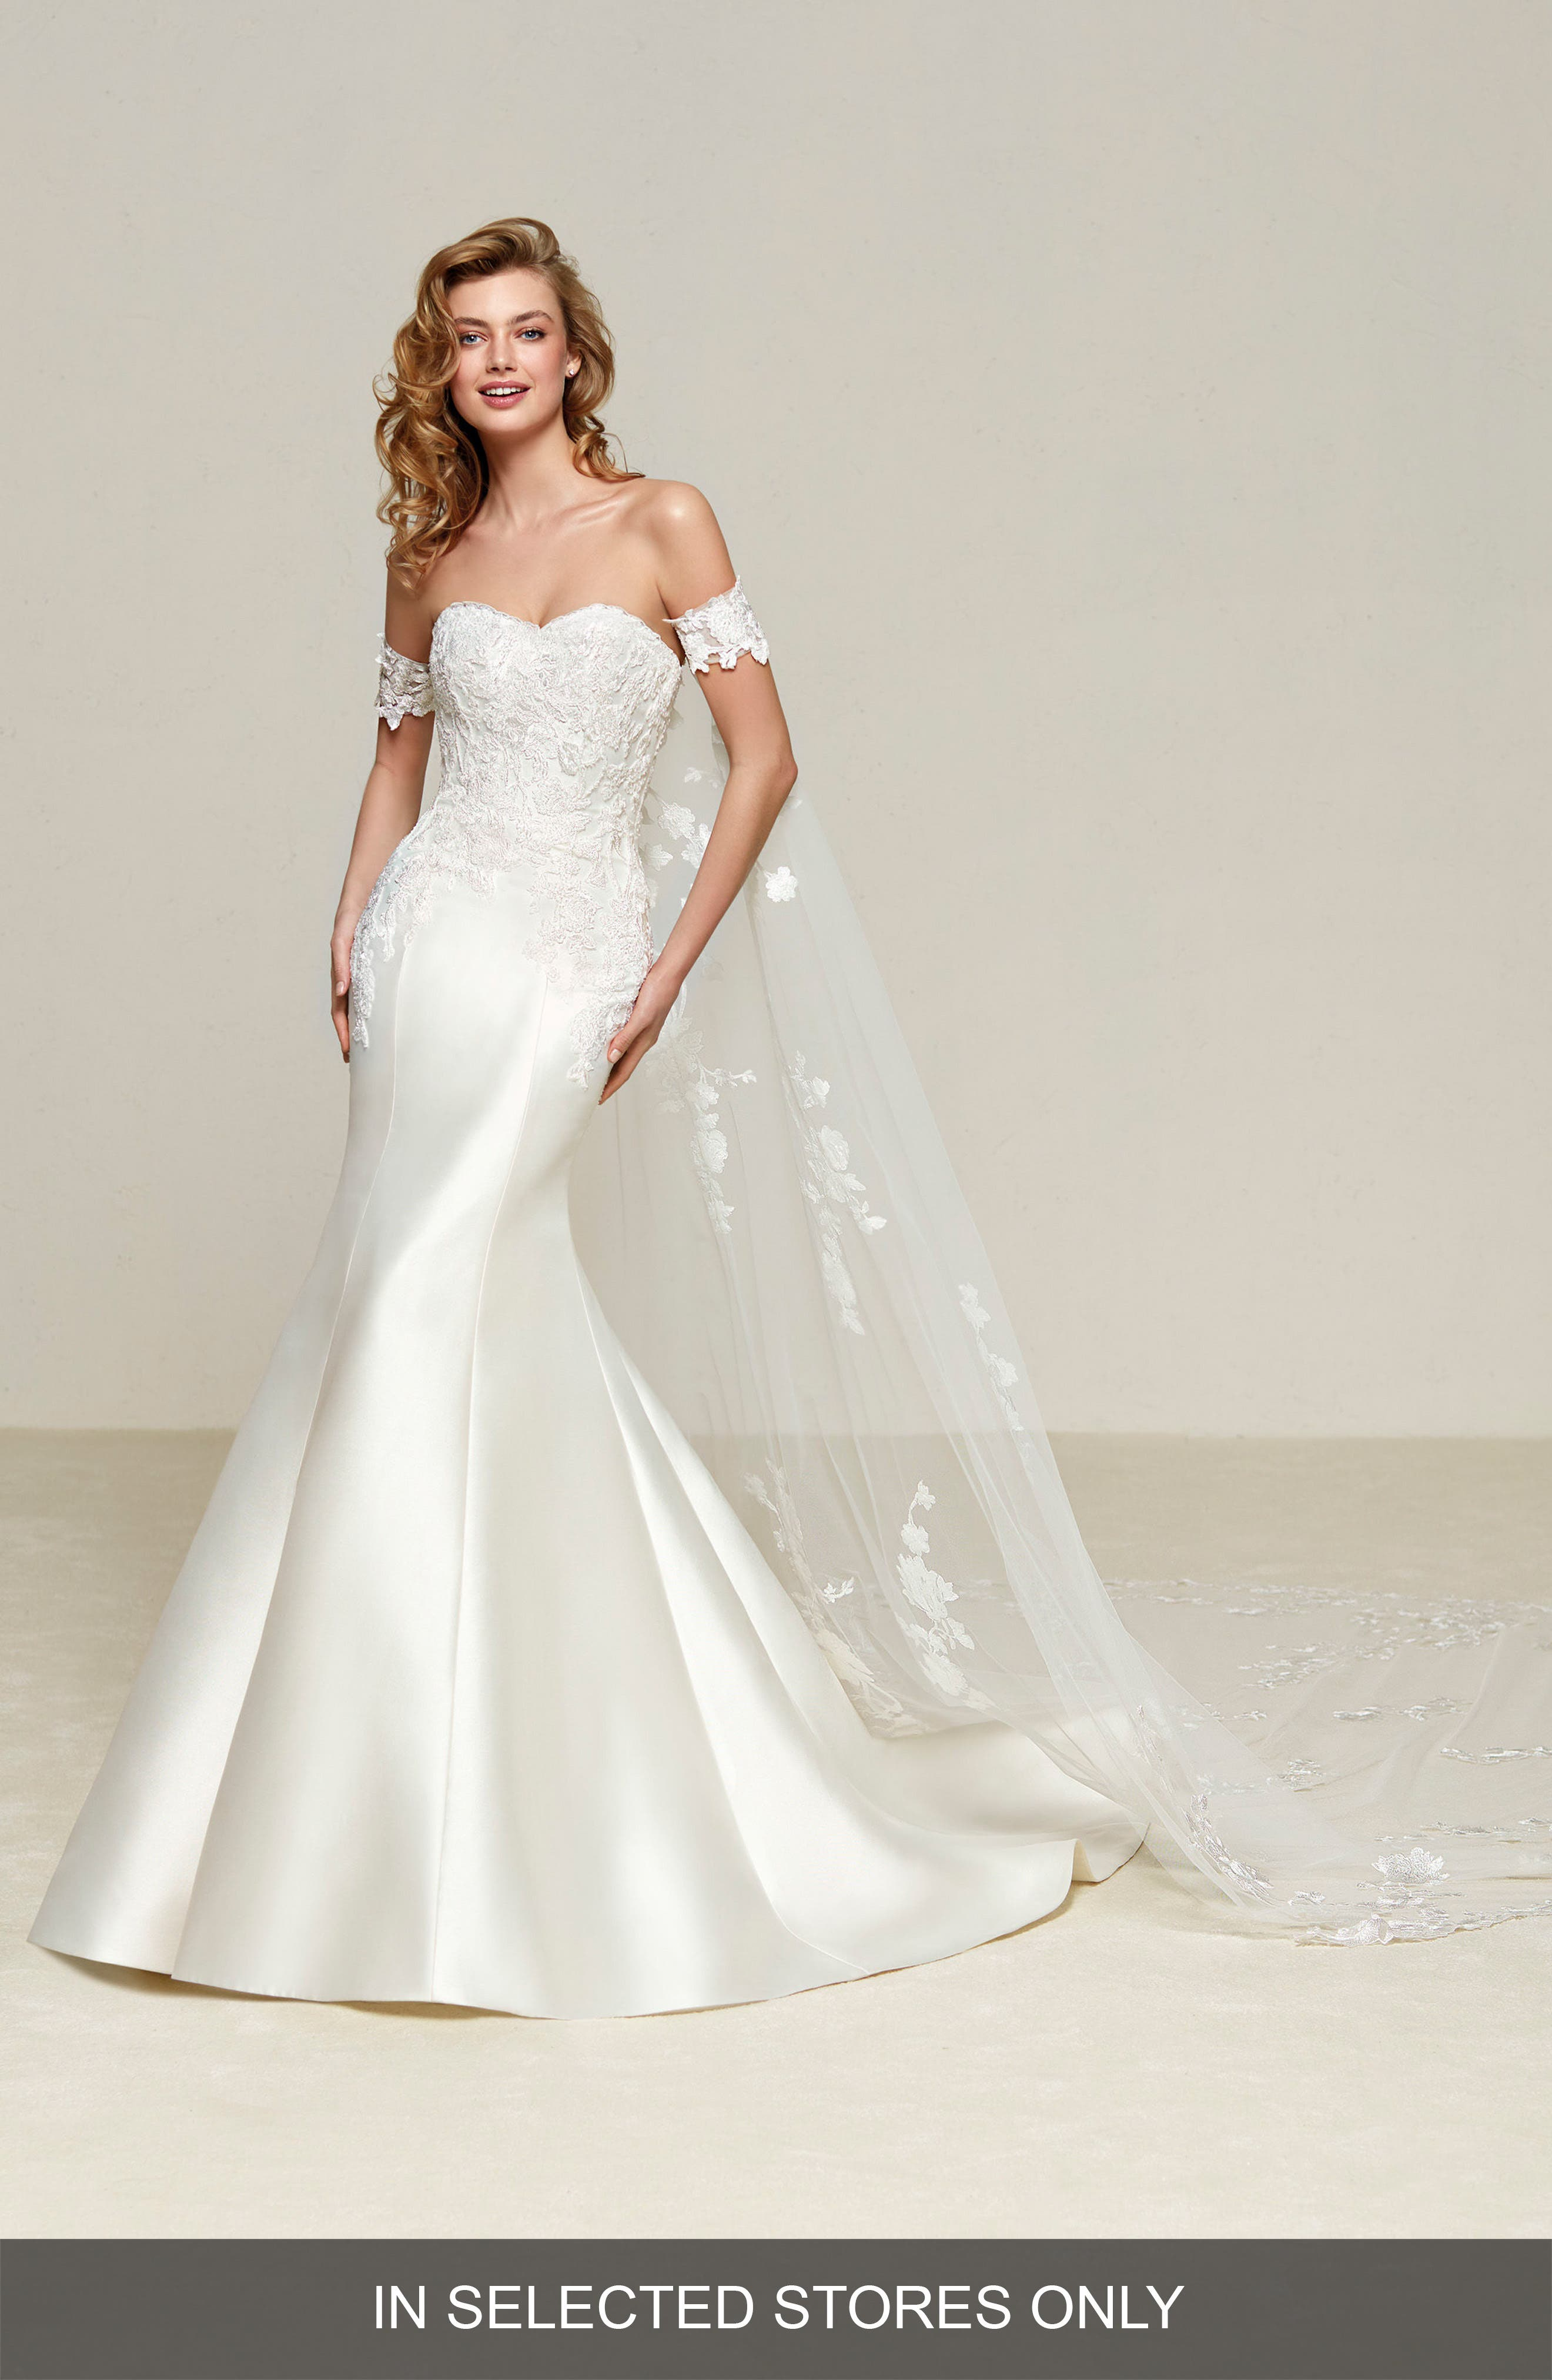 Drileas Strapless Mermaid Gown,                             Main thumbnail 1, color,                             Off White